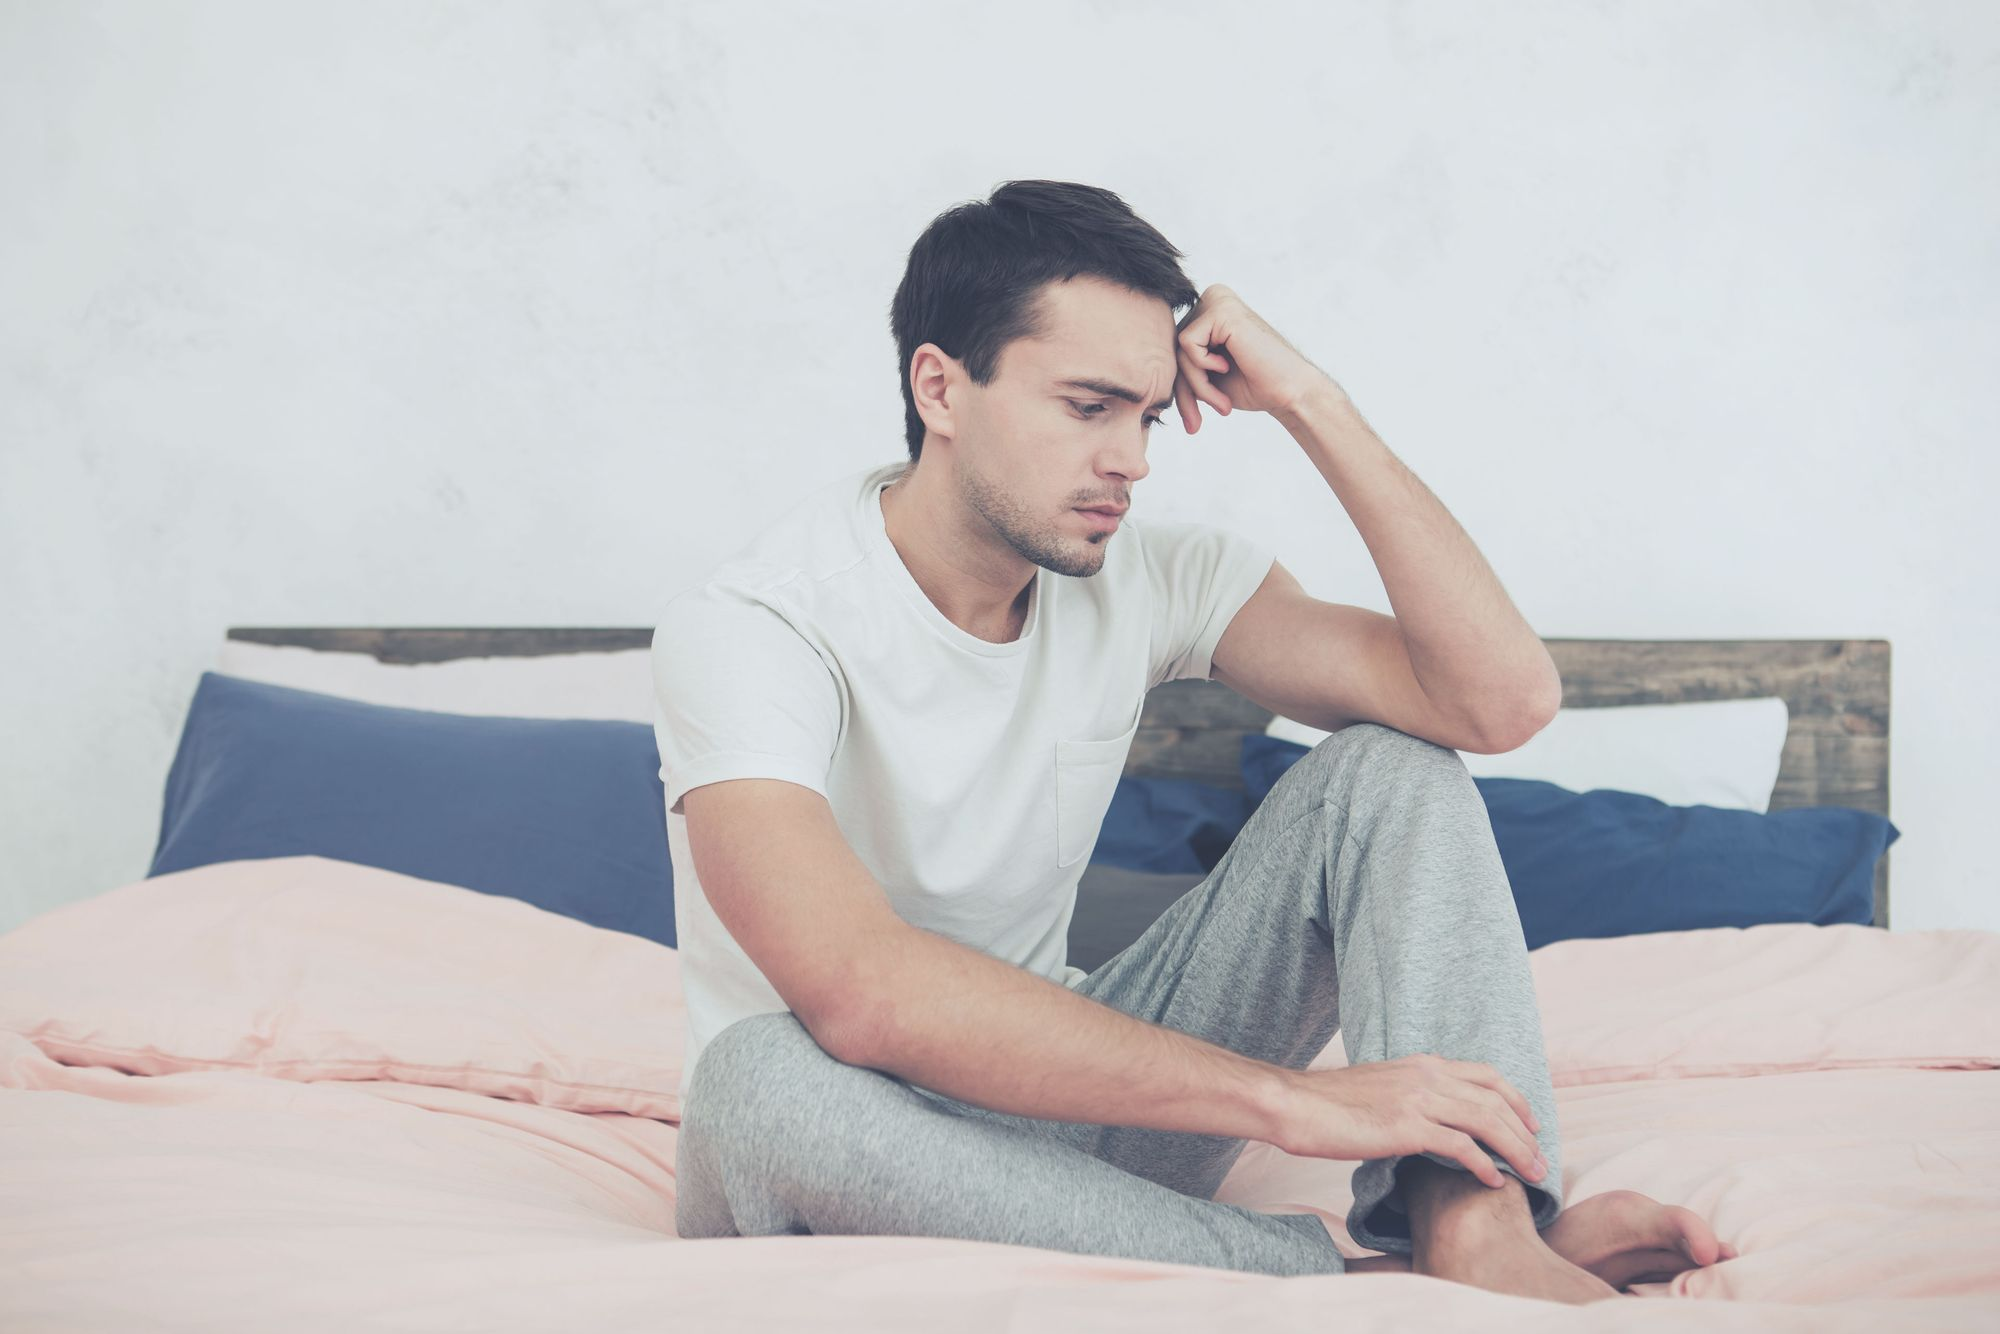 Stressed young man on bed